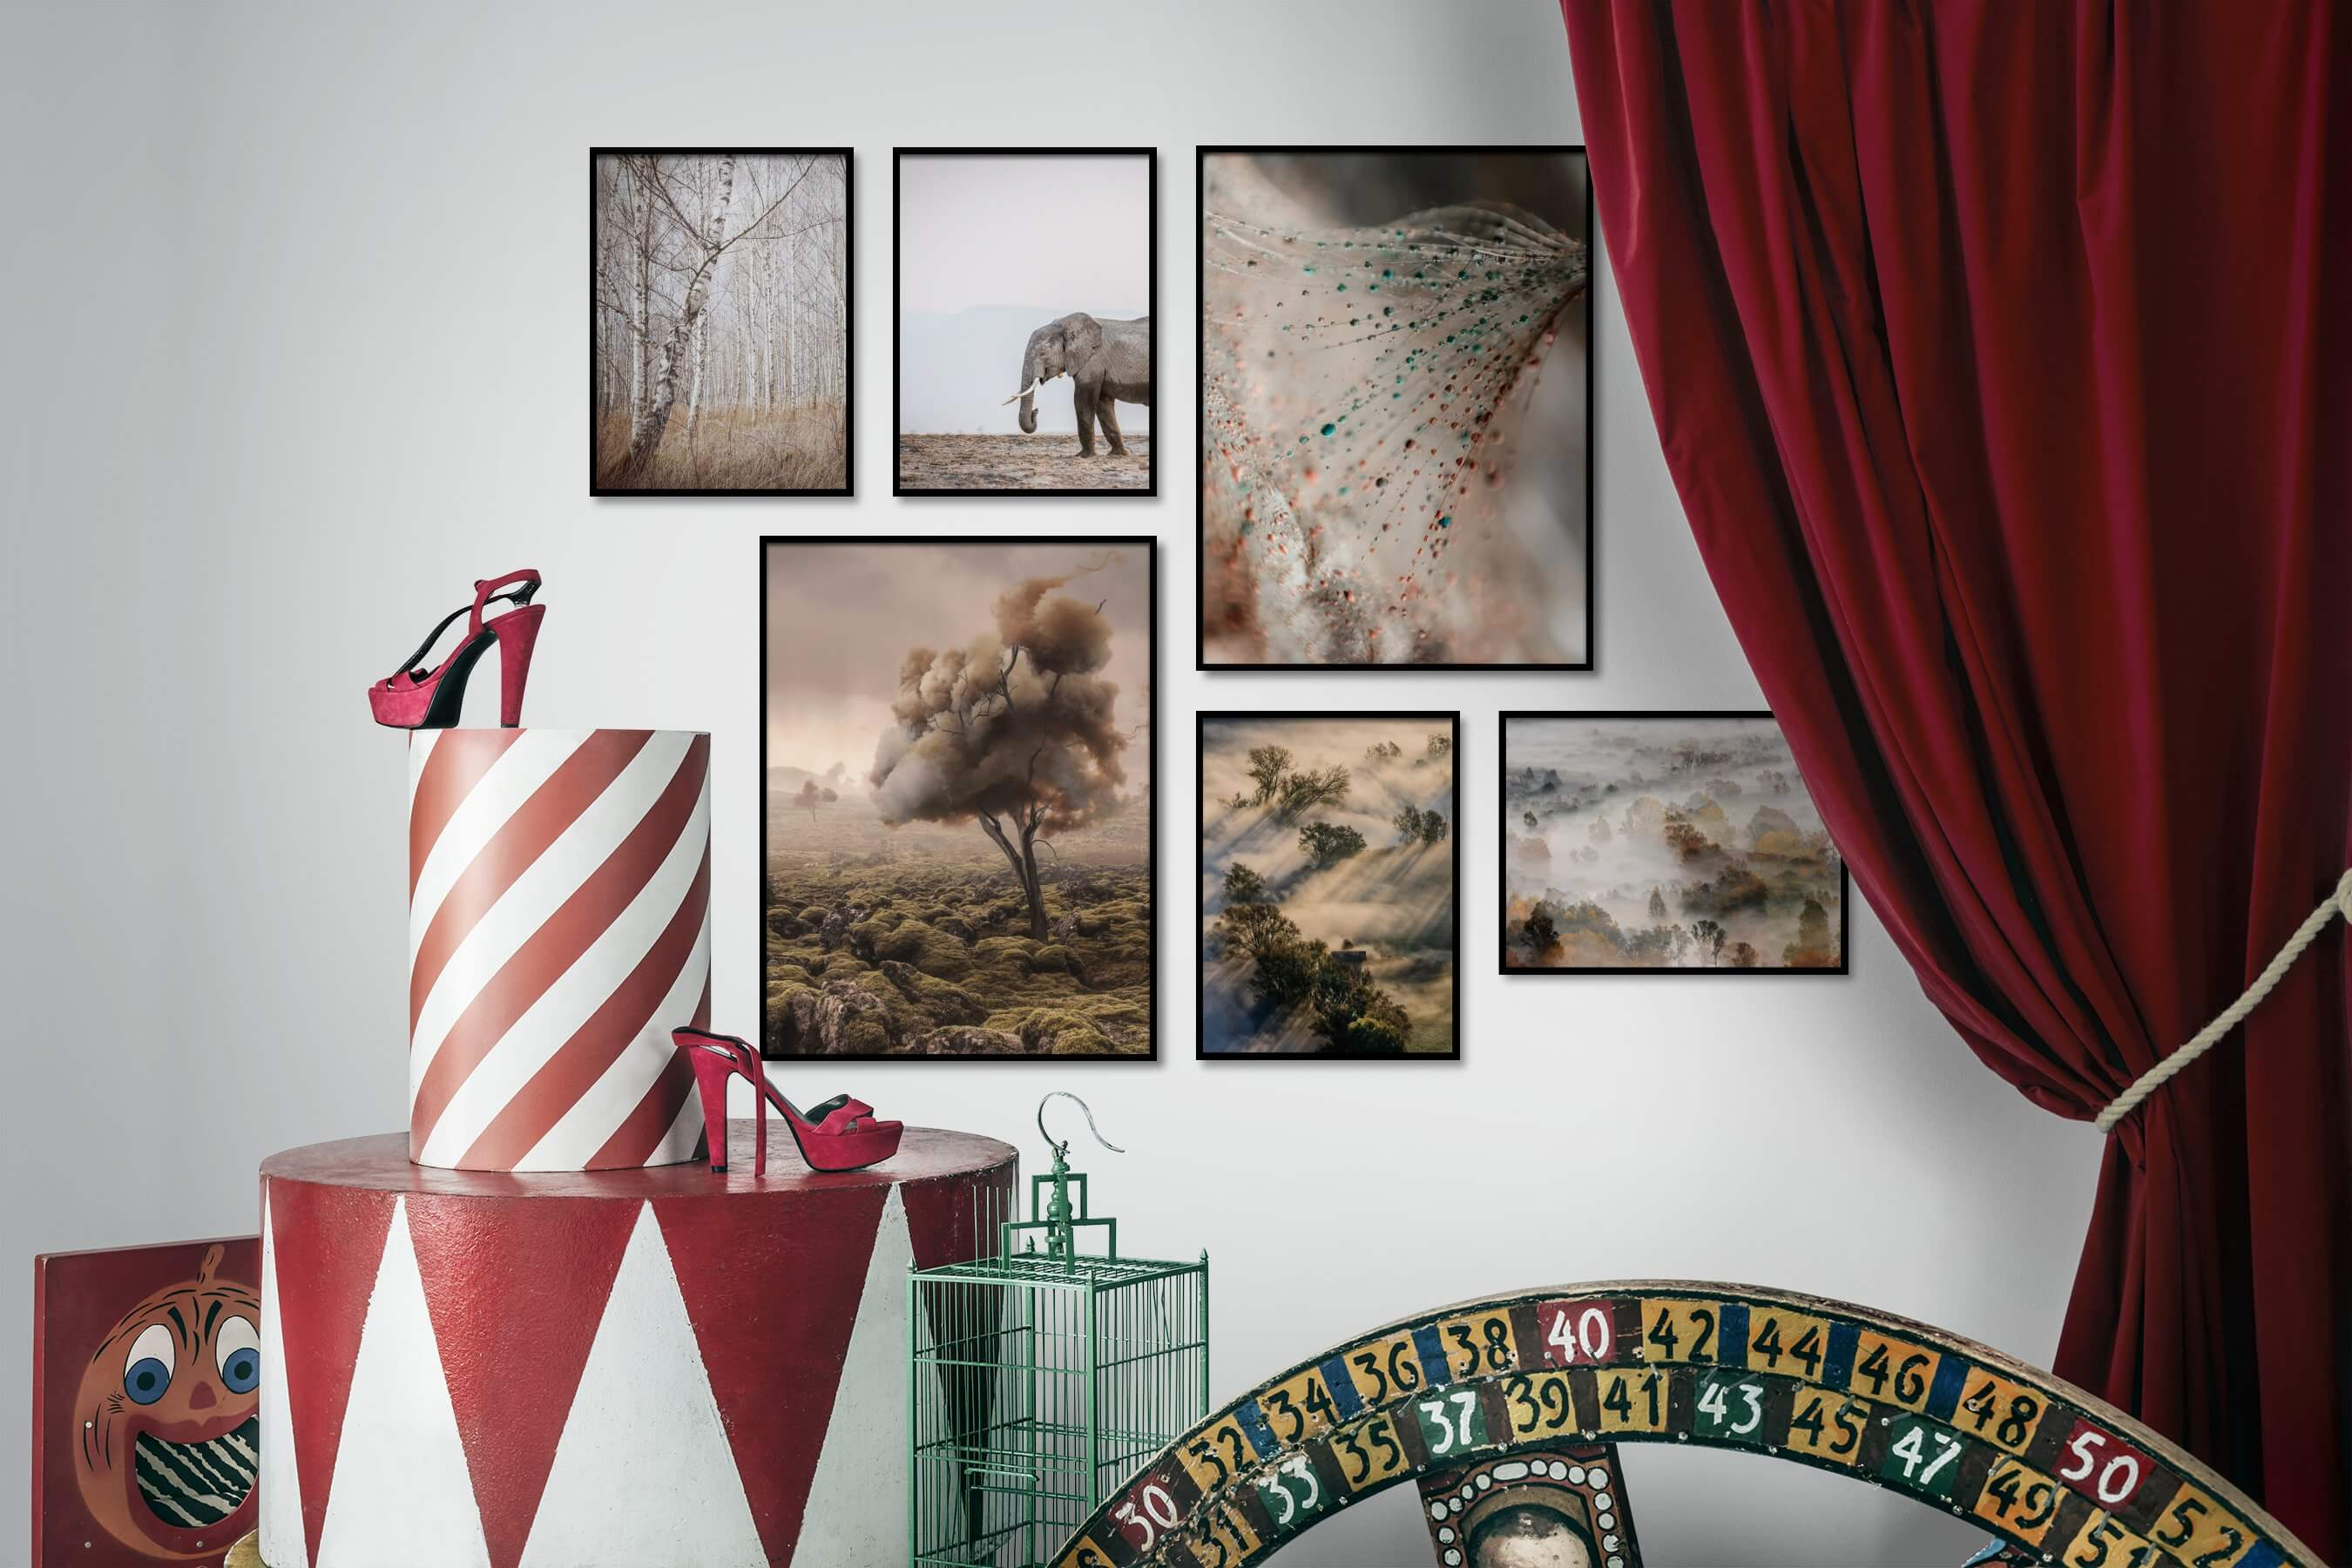 Gallery wall idea with six framed pictures arranged on a wall depicting Nature, Animals, Artsy, For the Moderate, Flowers & Plants, and Country Life